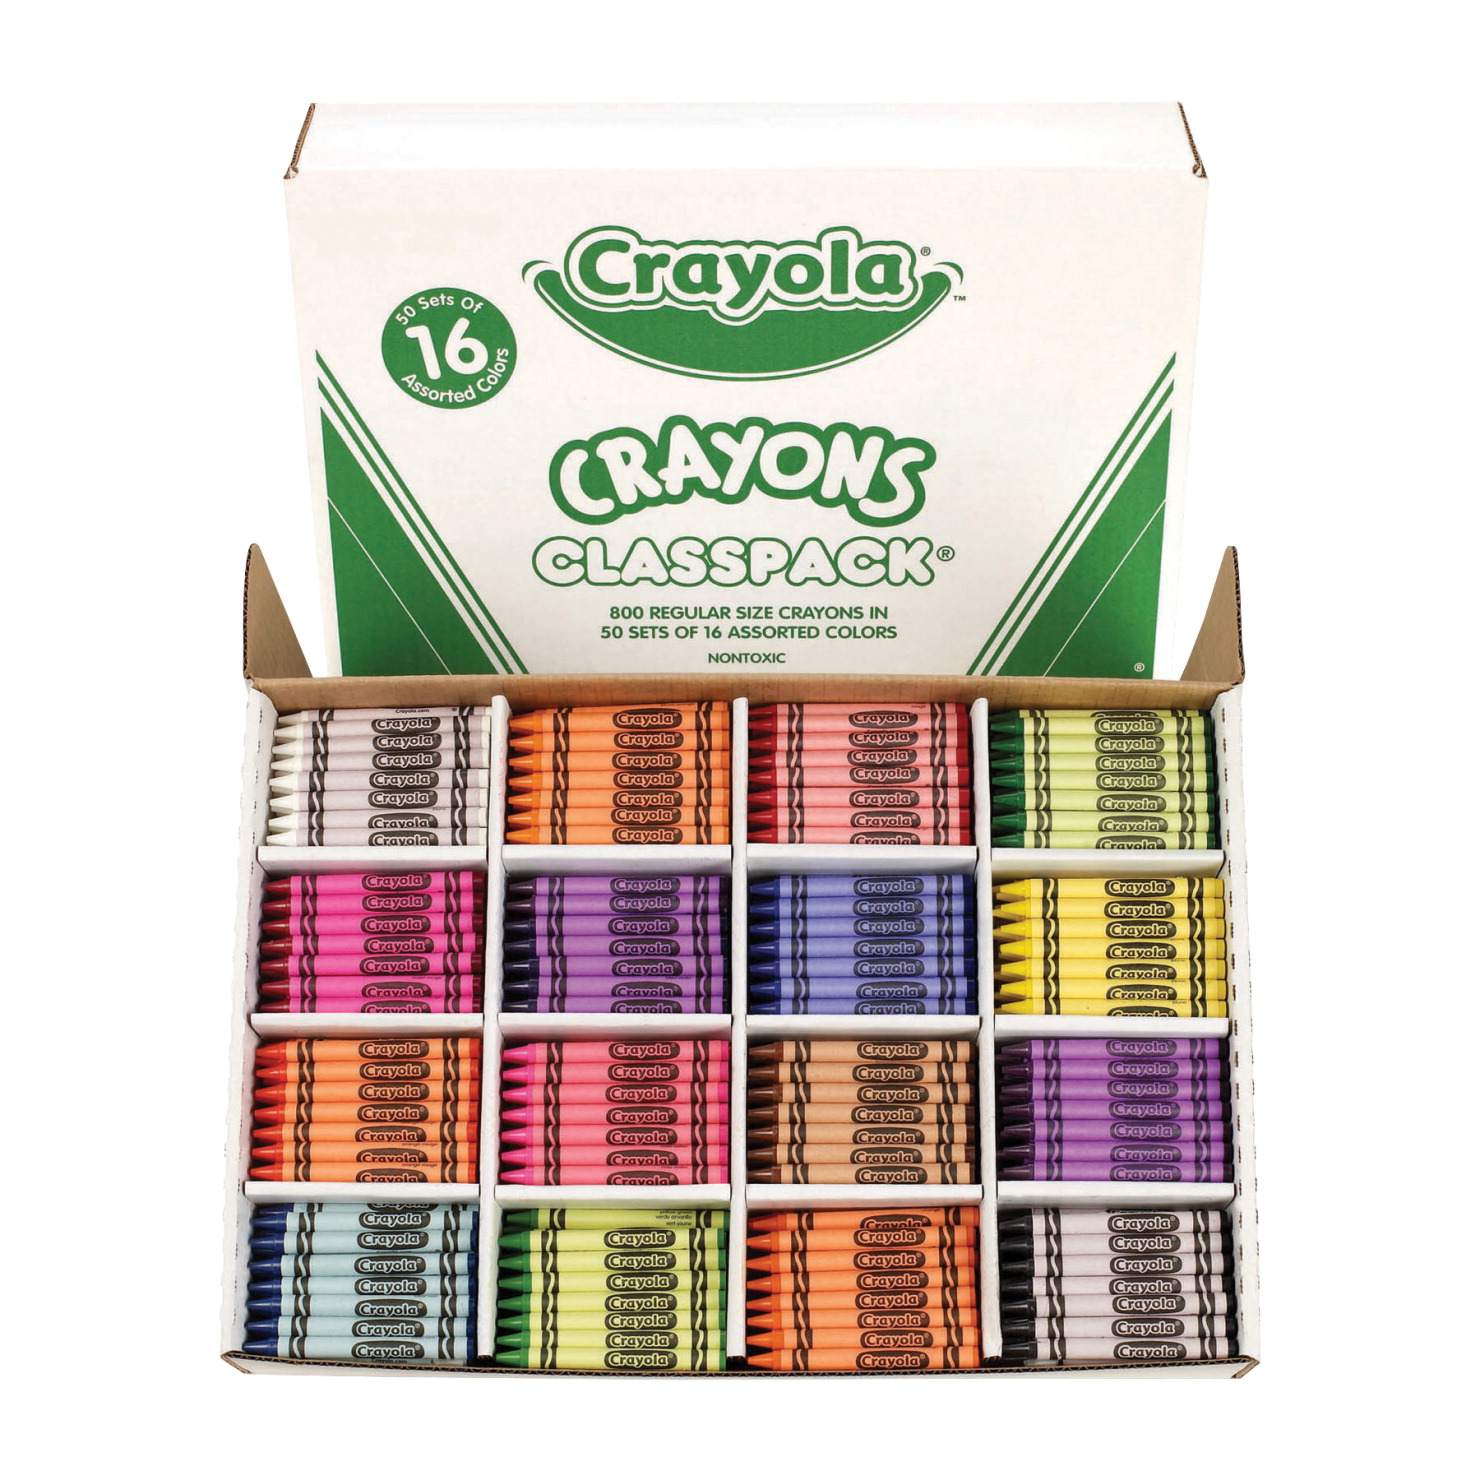 crayola crayon classroom pack 16 assorted colors set of 800